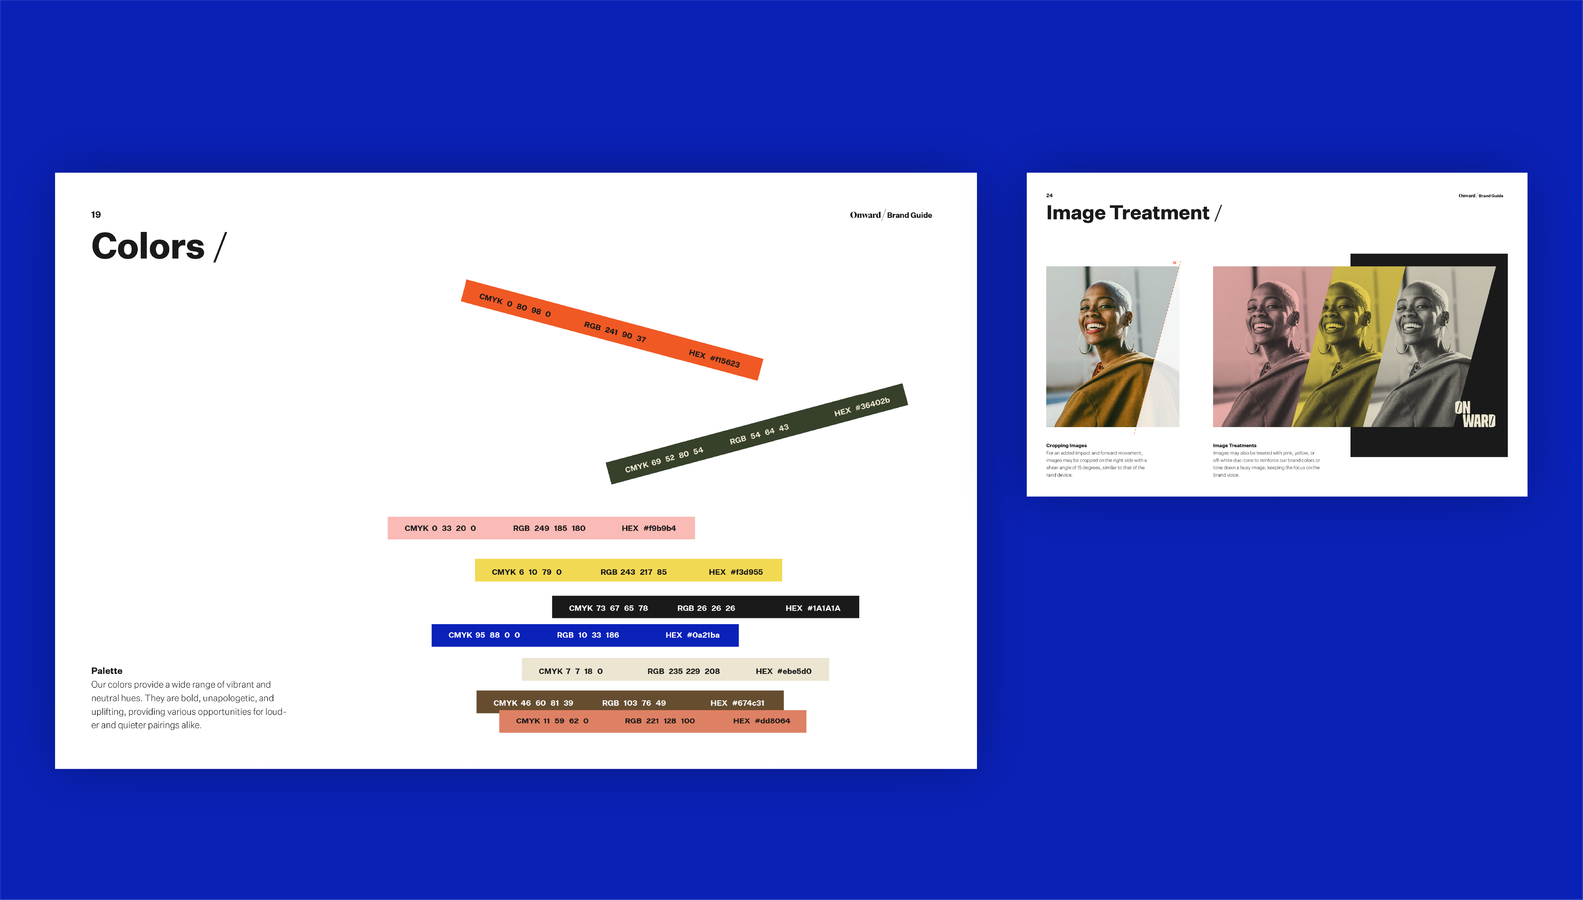 Onward brand guide color and image treatment page